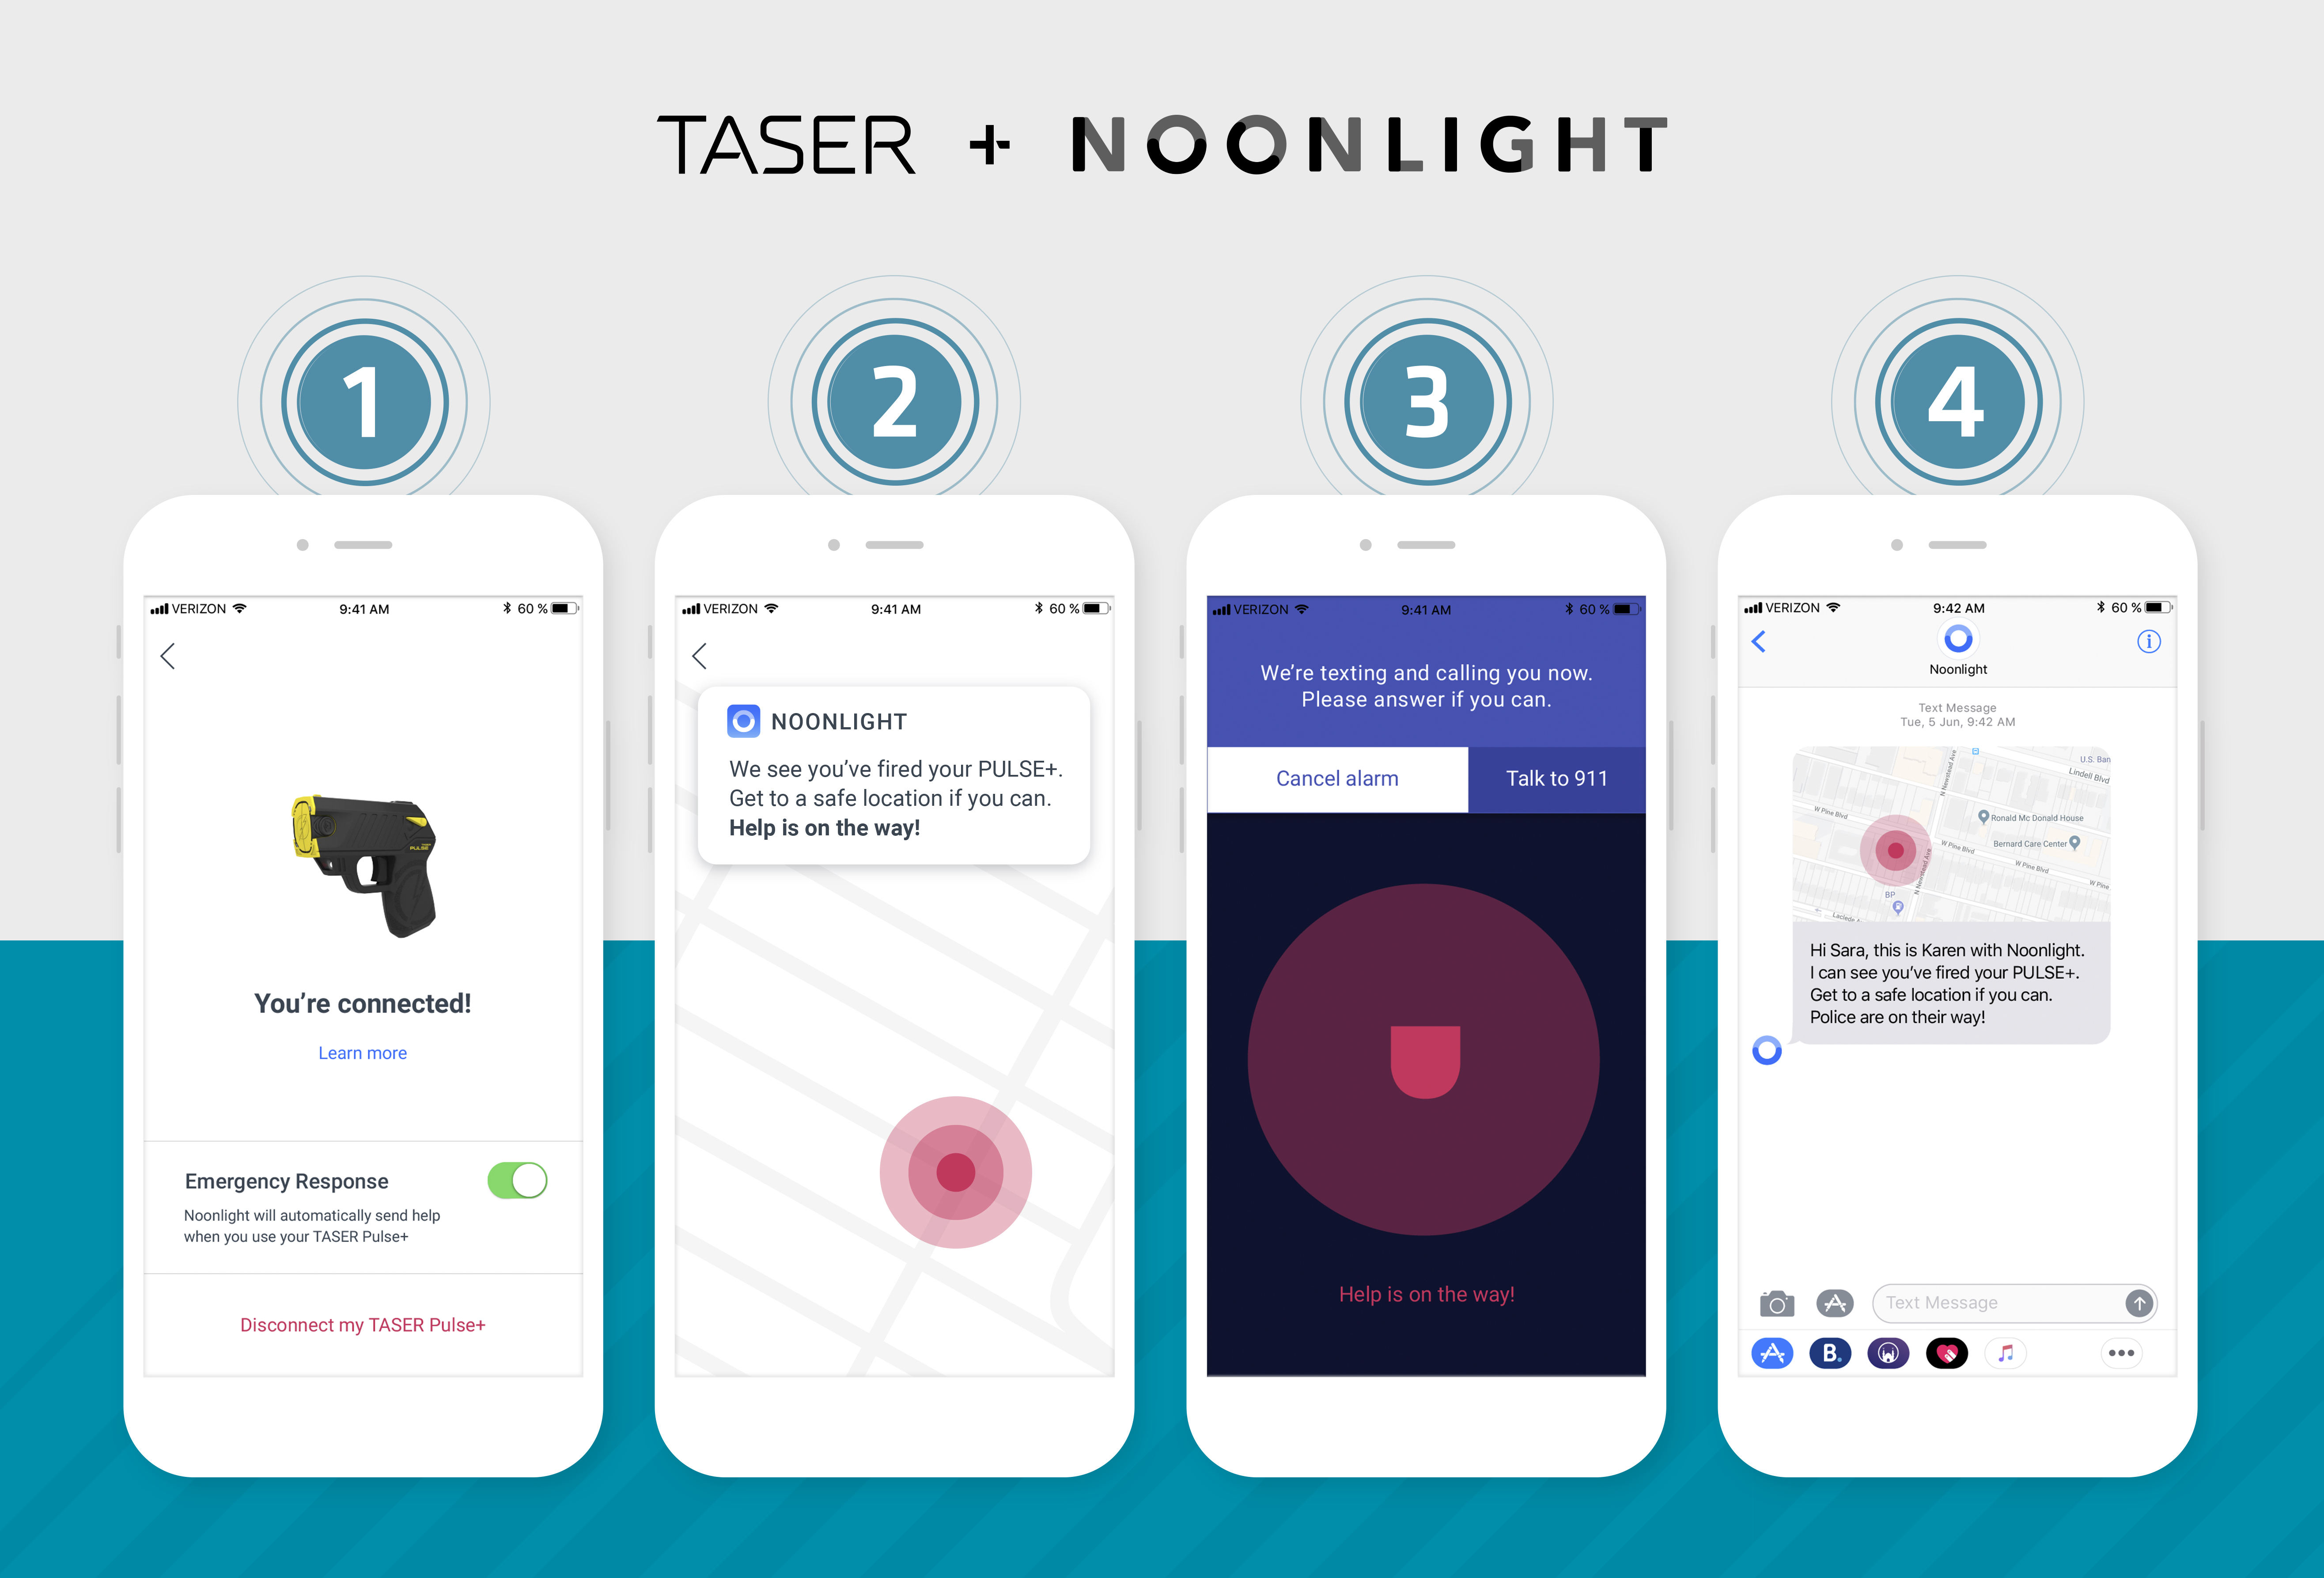 taser-partners-up-with-noonlight